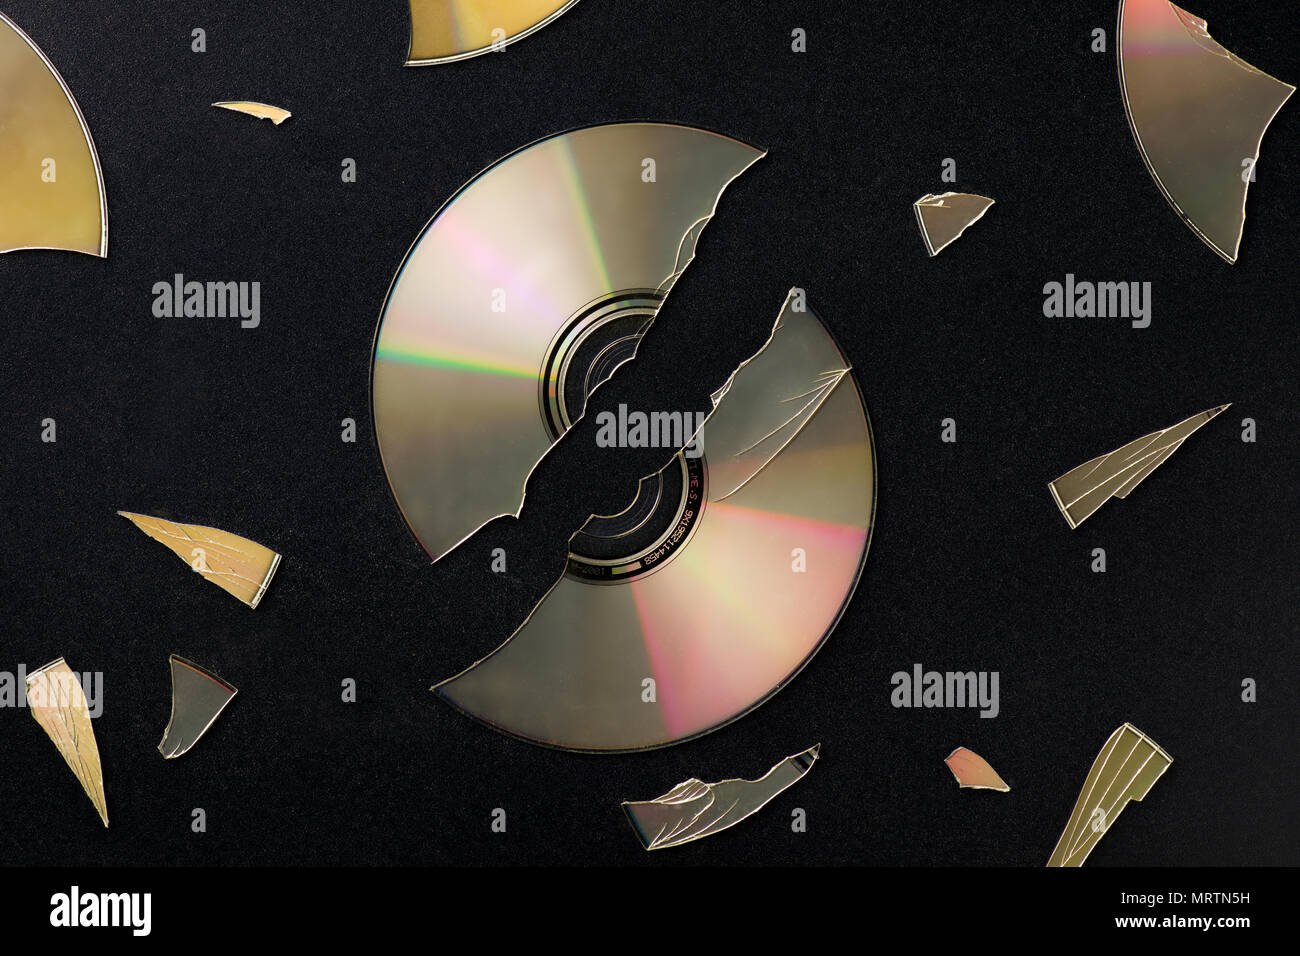 Broken Compact Disc with Pieces Scattared on Black Surface - Stock Image